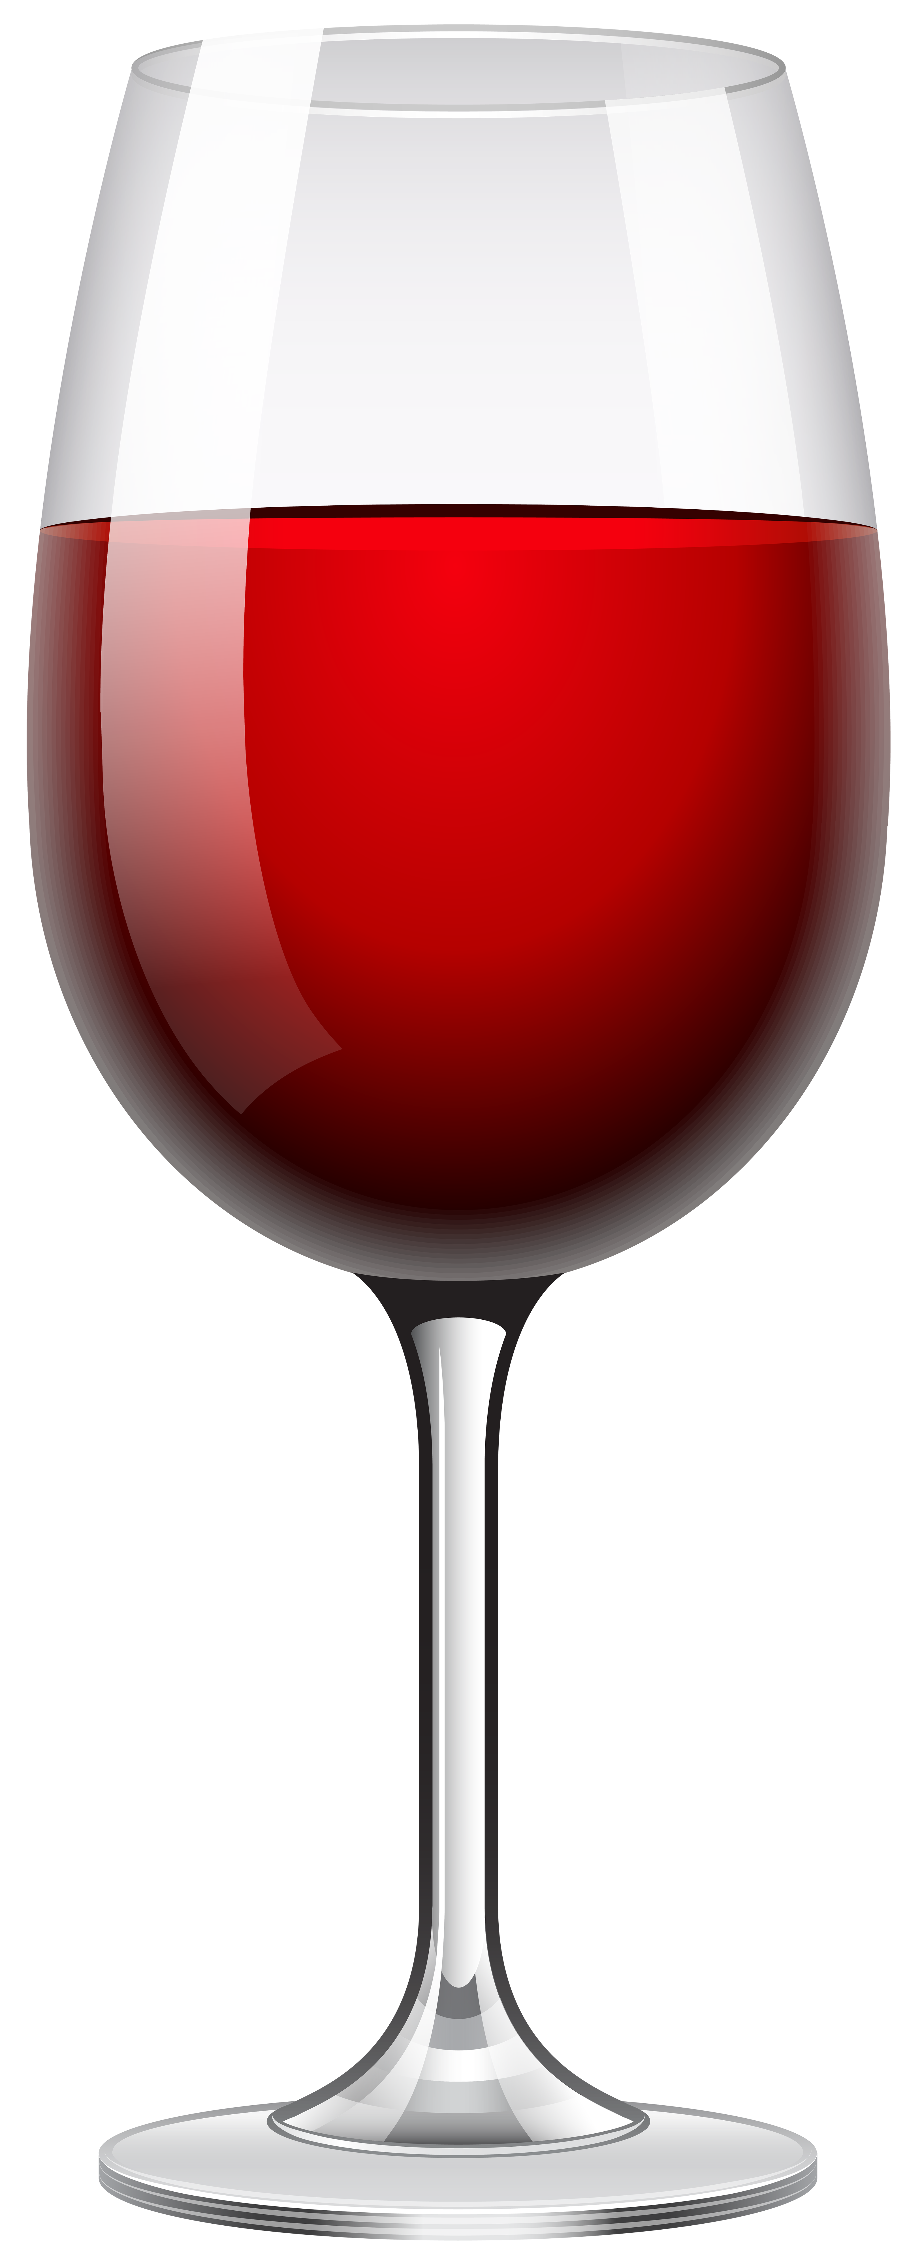 Download High Quality wine glass clipart transparent ...